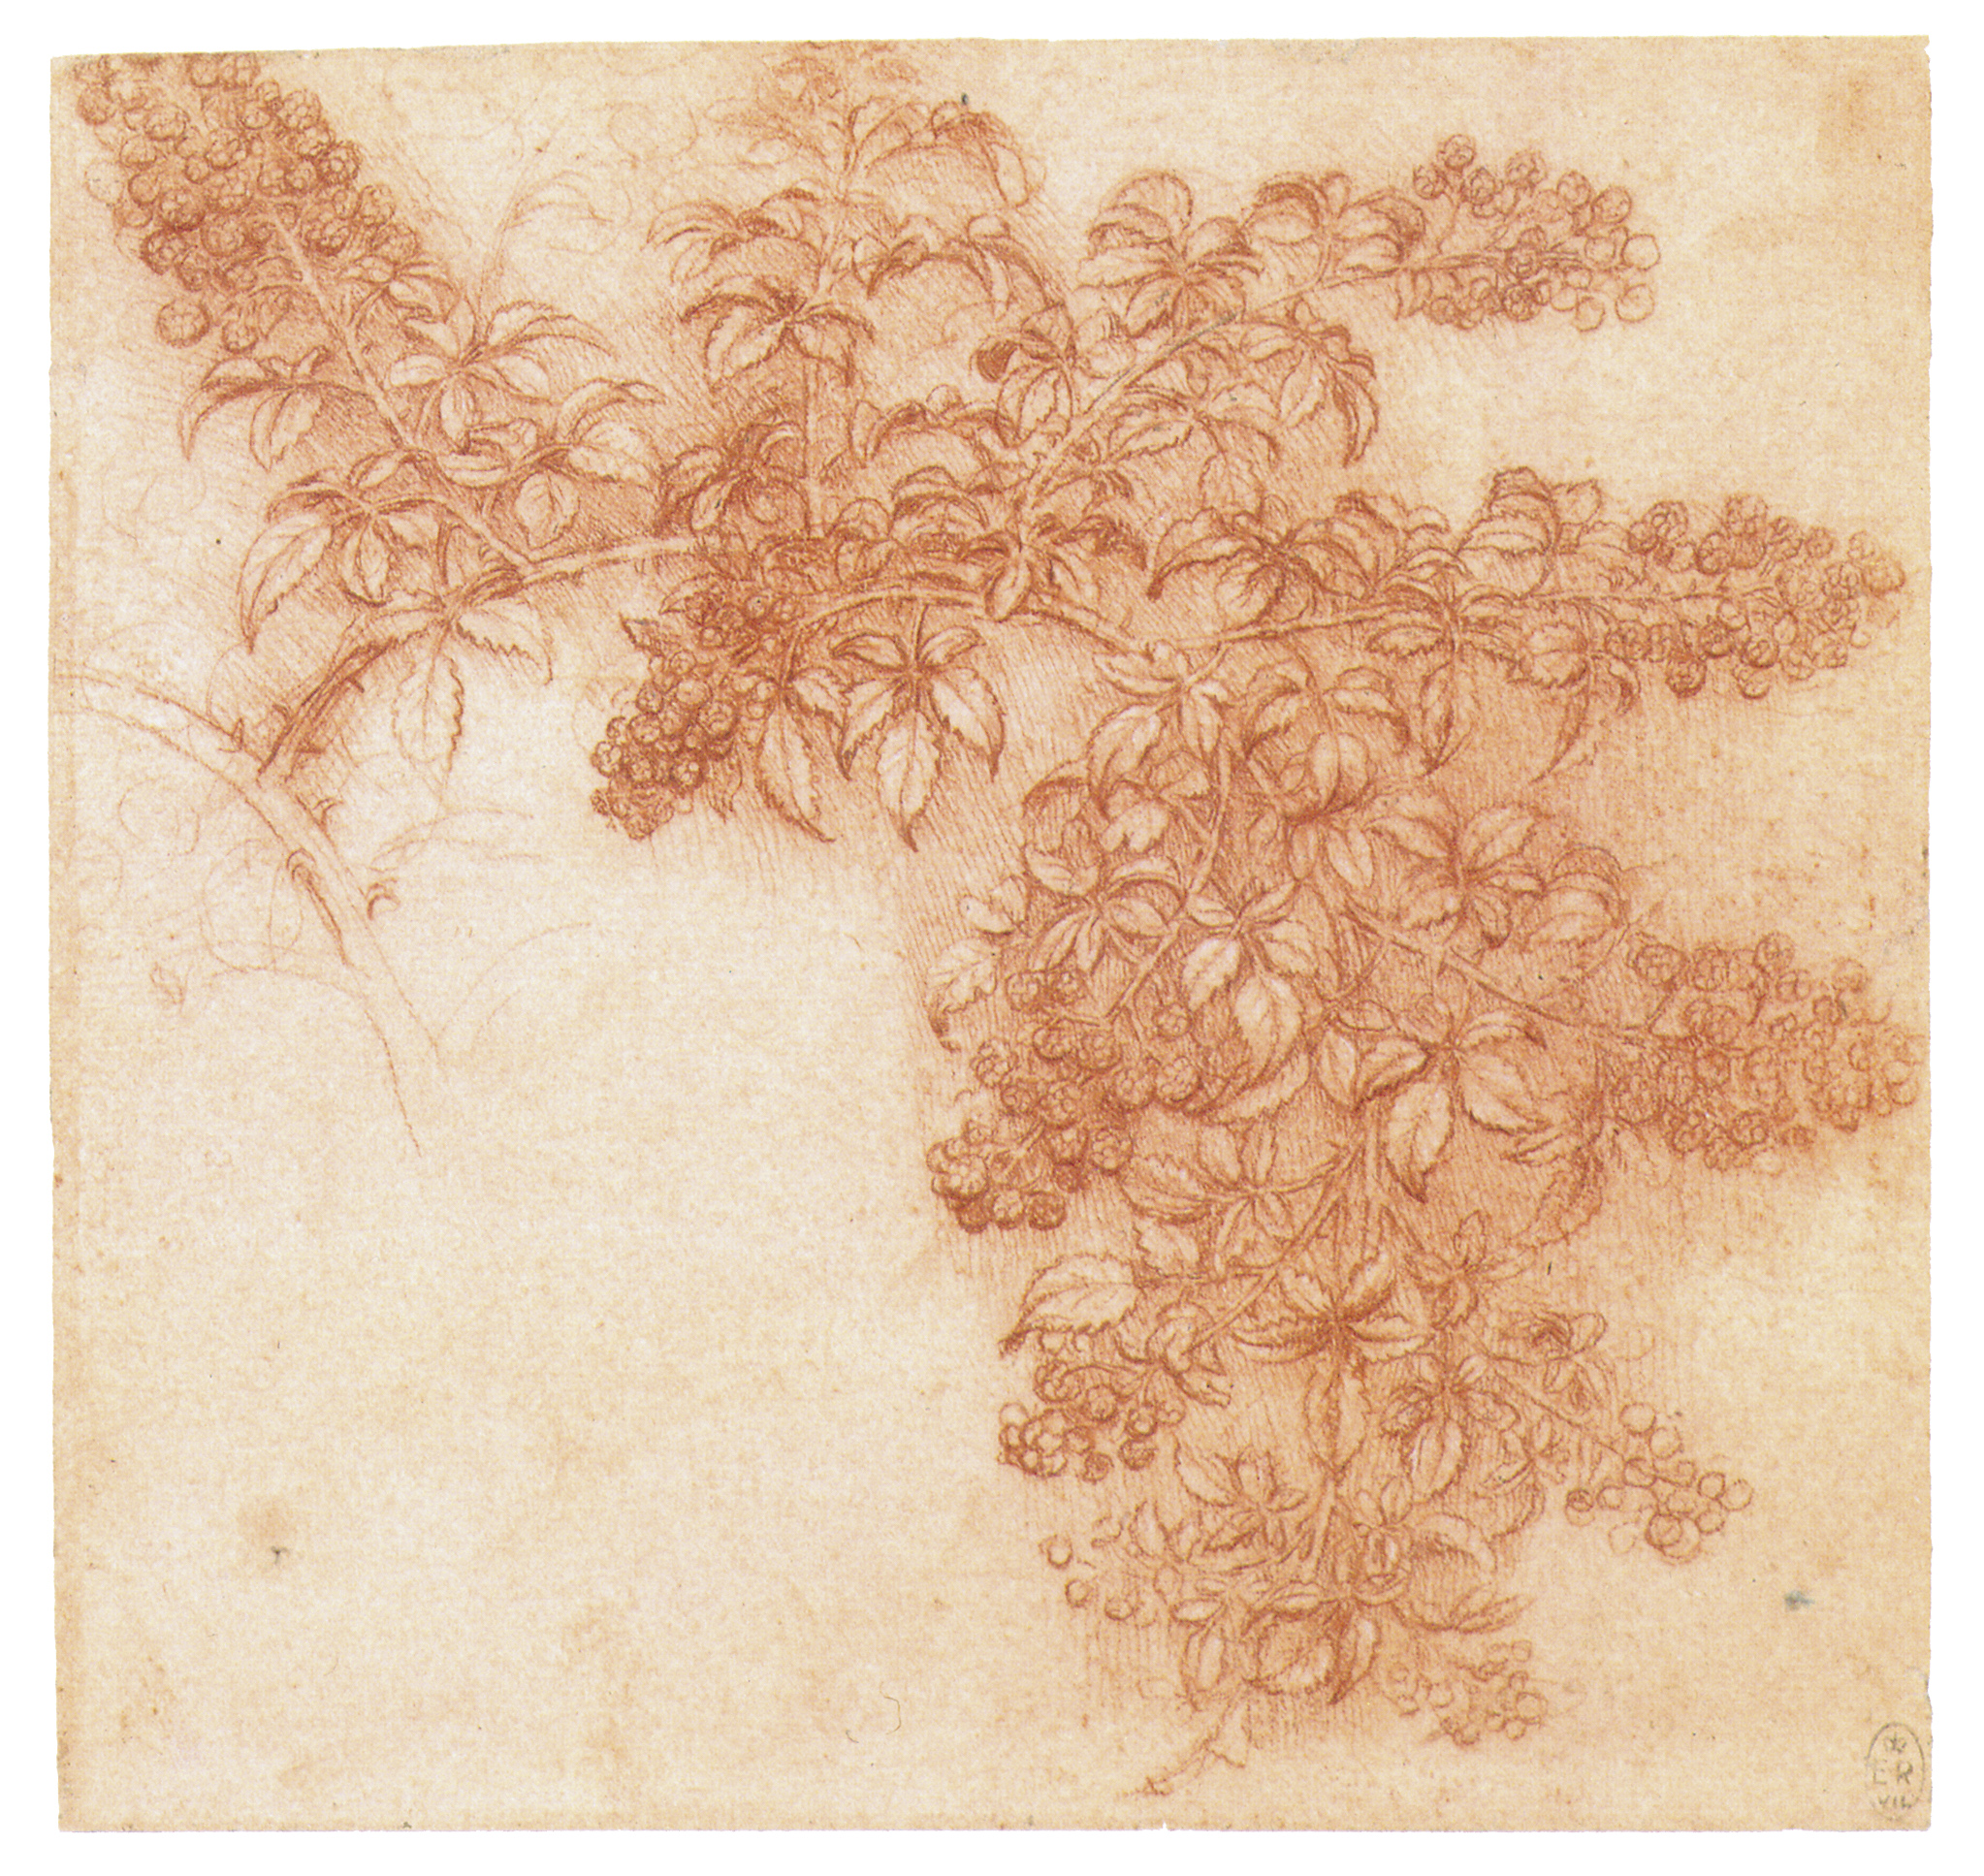 Leonardo da Vinci - Drawings - Plants - 05.JPG